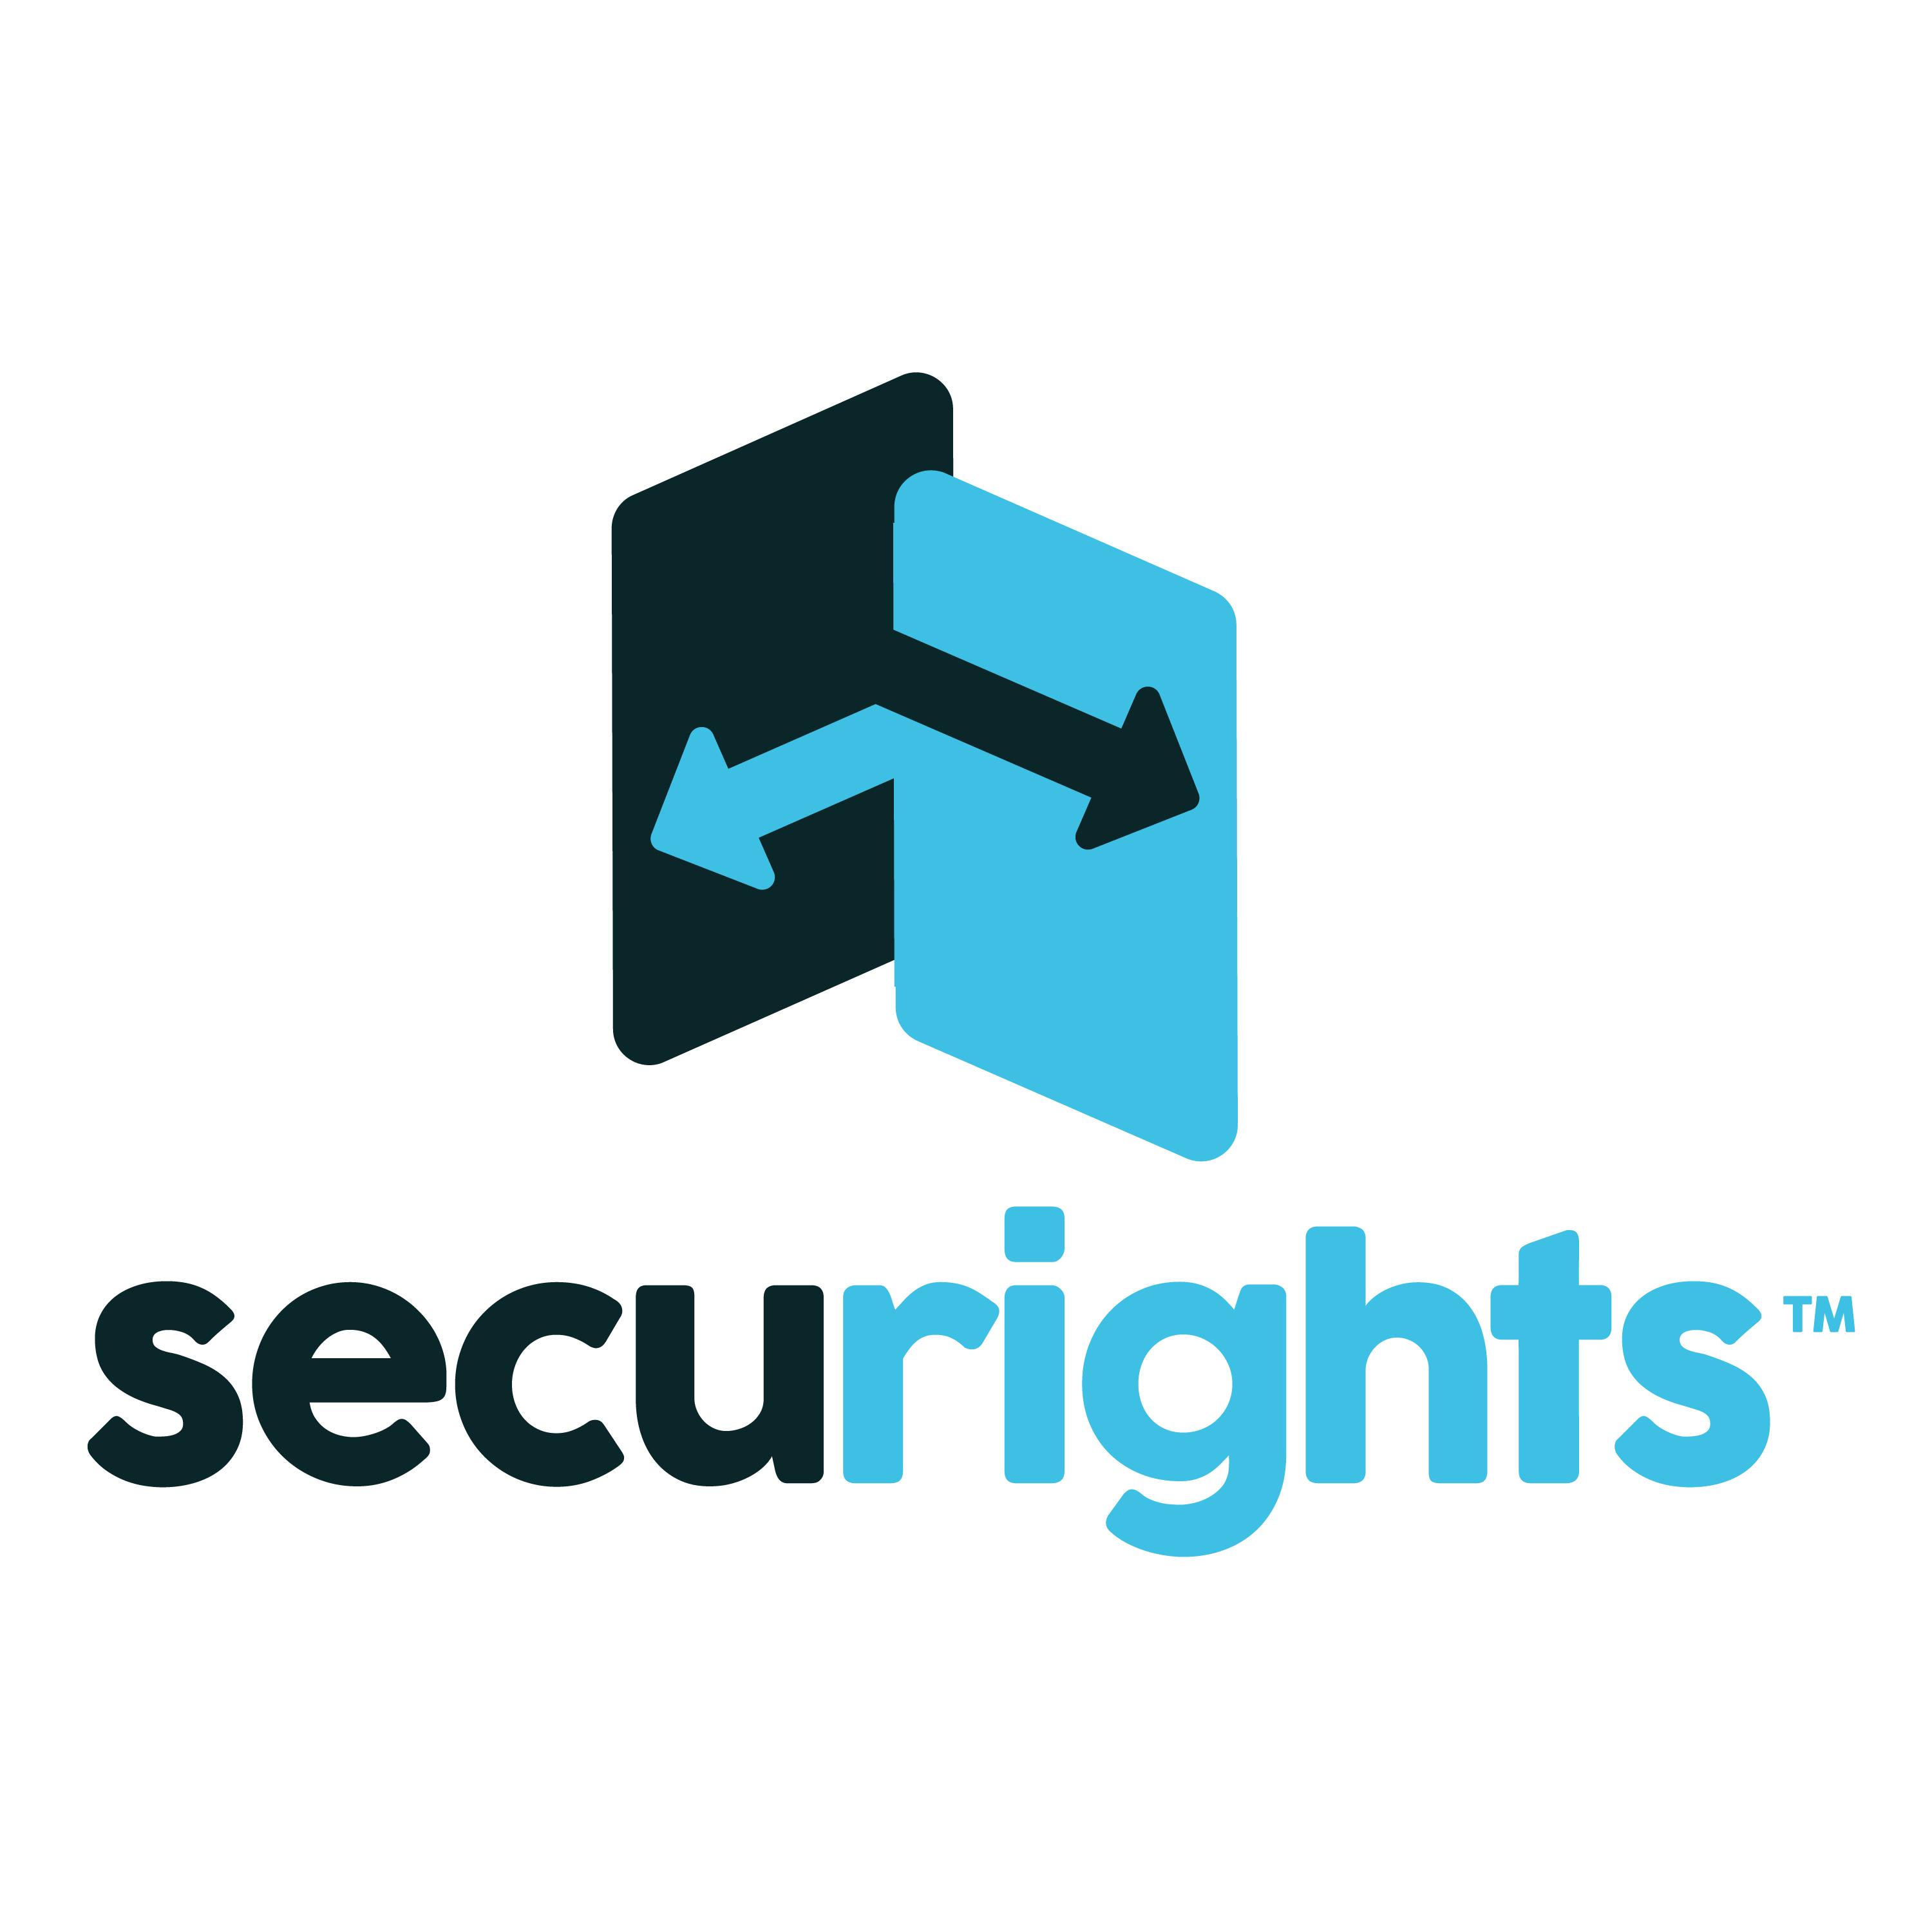 Securights